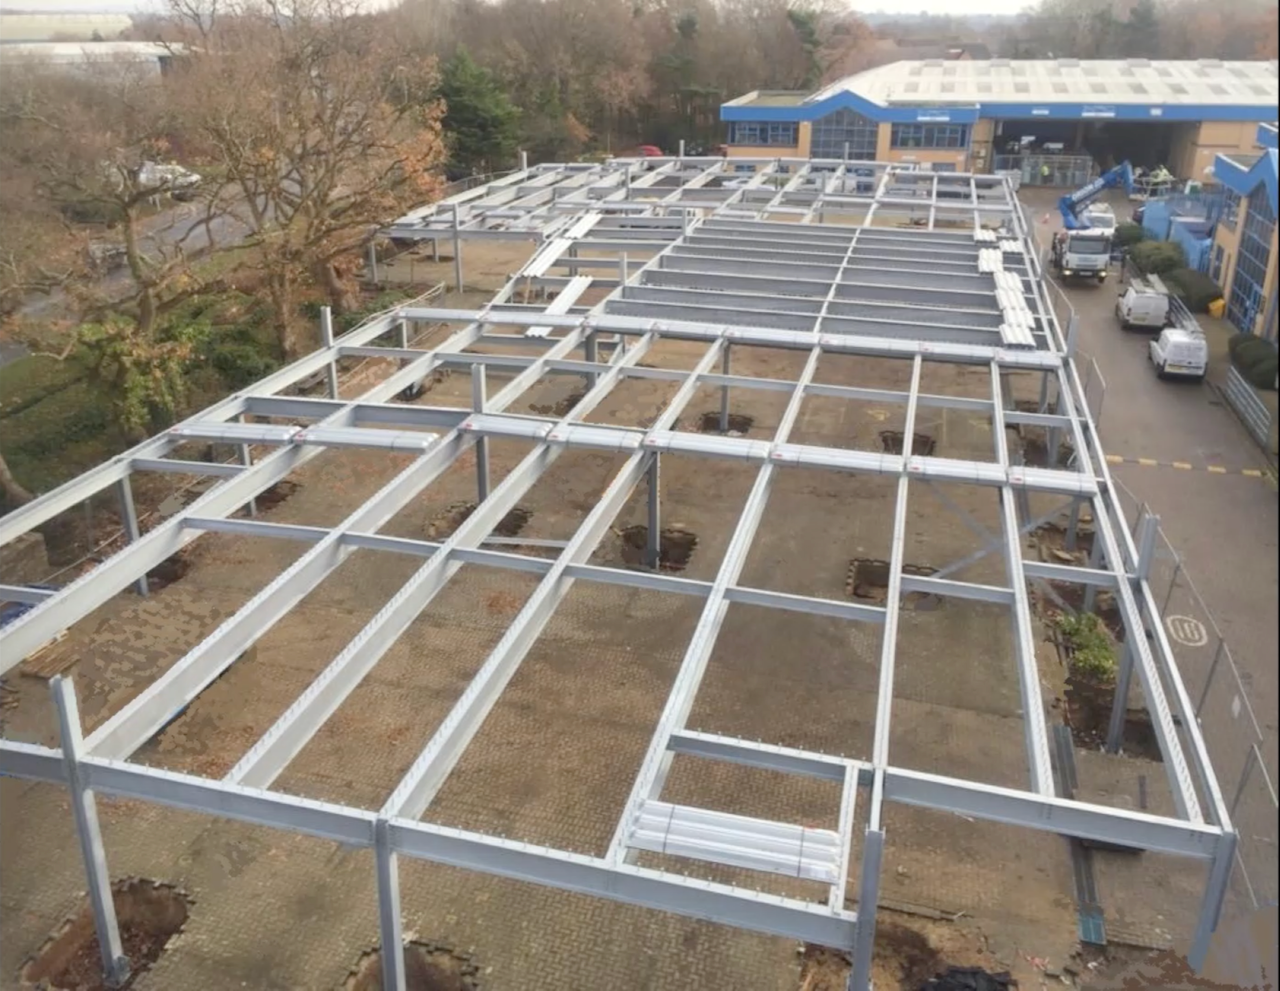 a photo of a steel frame construction for a new car park